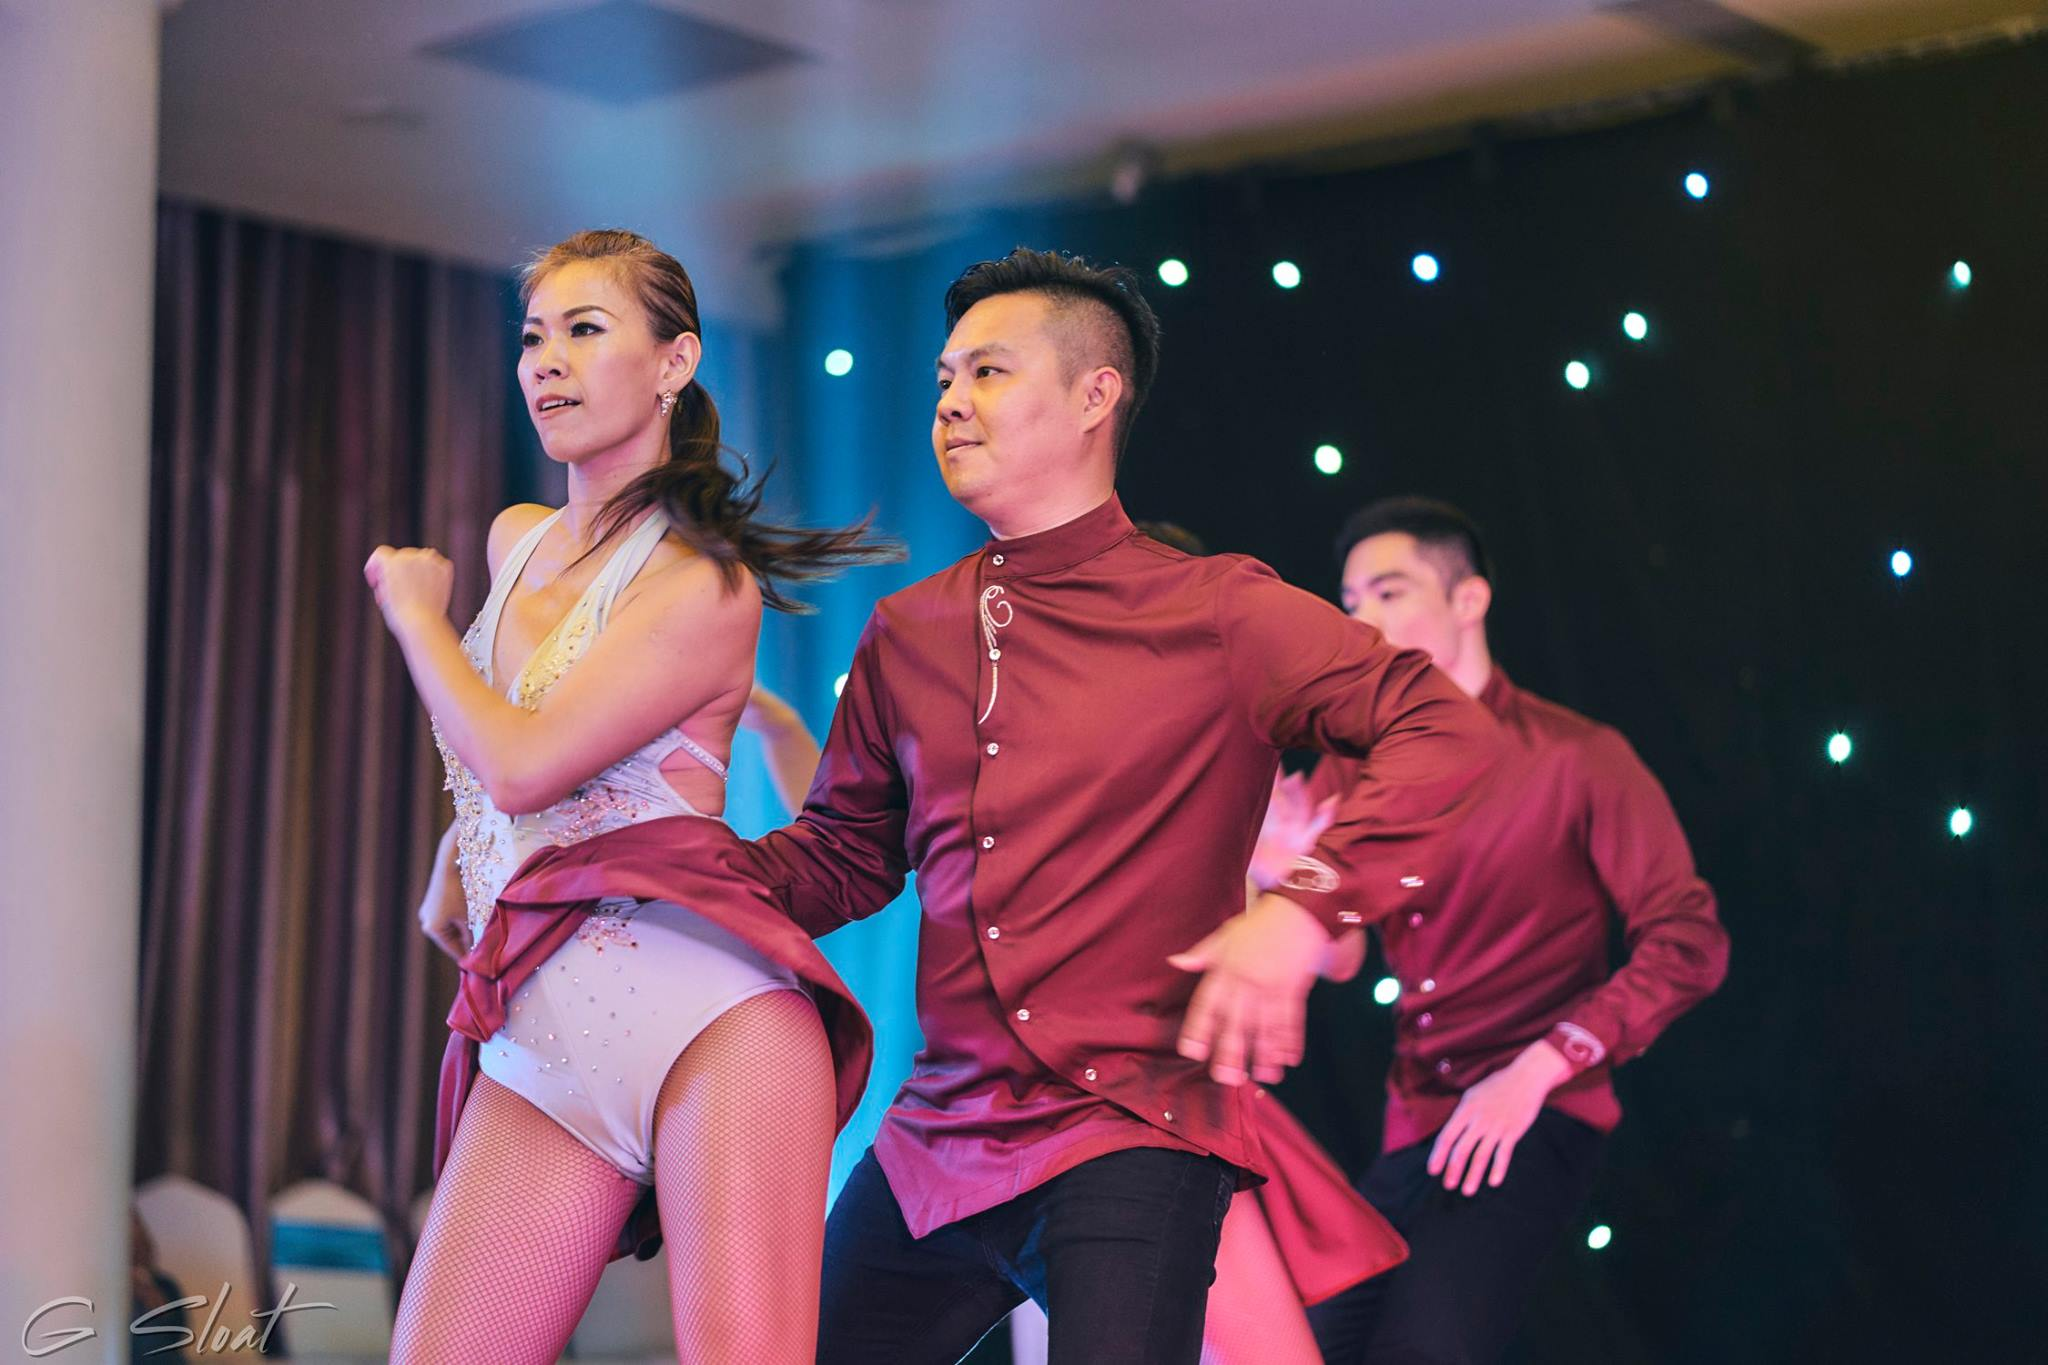 TLDA Taiwan Latin Dance Academy founders Calvin Wang and Mandy Wang performing at Vietnam Latin Experience